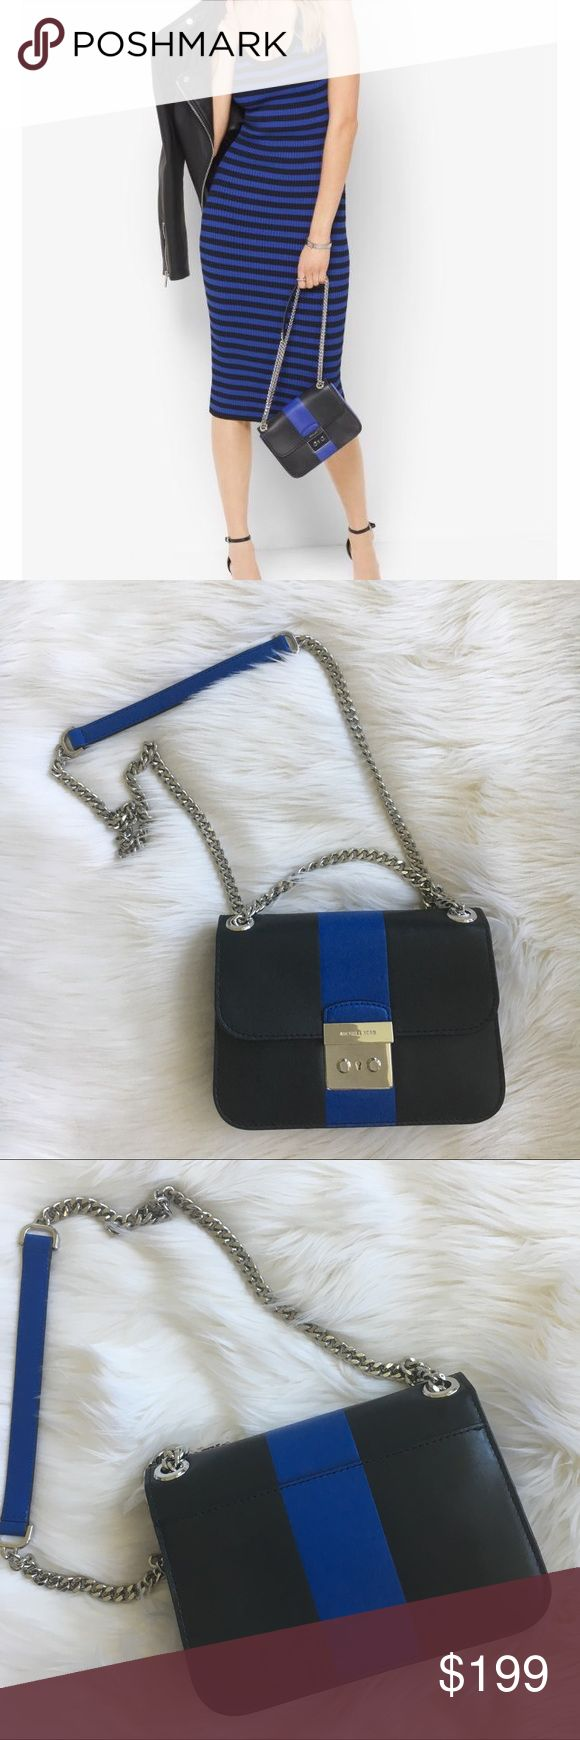 Michael Kors handbag Striped Shoulder bag in electric blue and black with Silvertone hardware by Michael Kors. Comes with fust bag. New! Authentic trades MICHAEL Michael Kors Bags Shoulder Bags